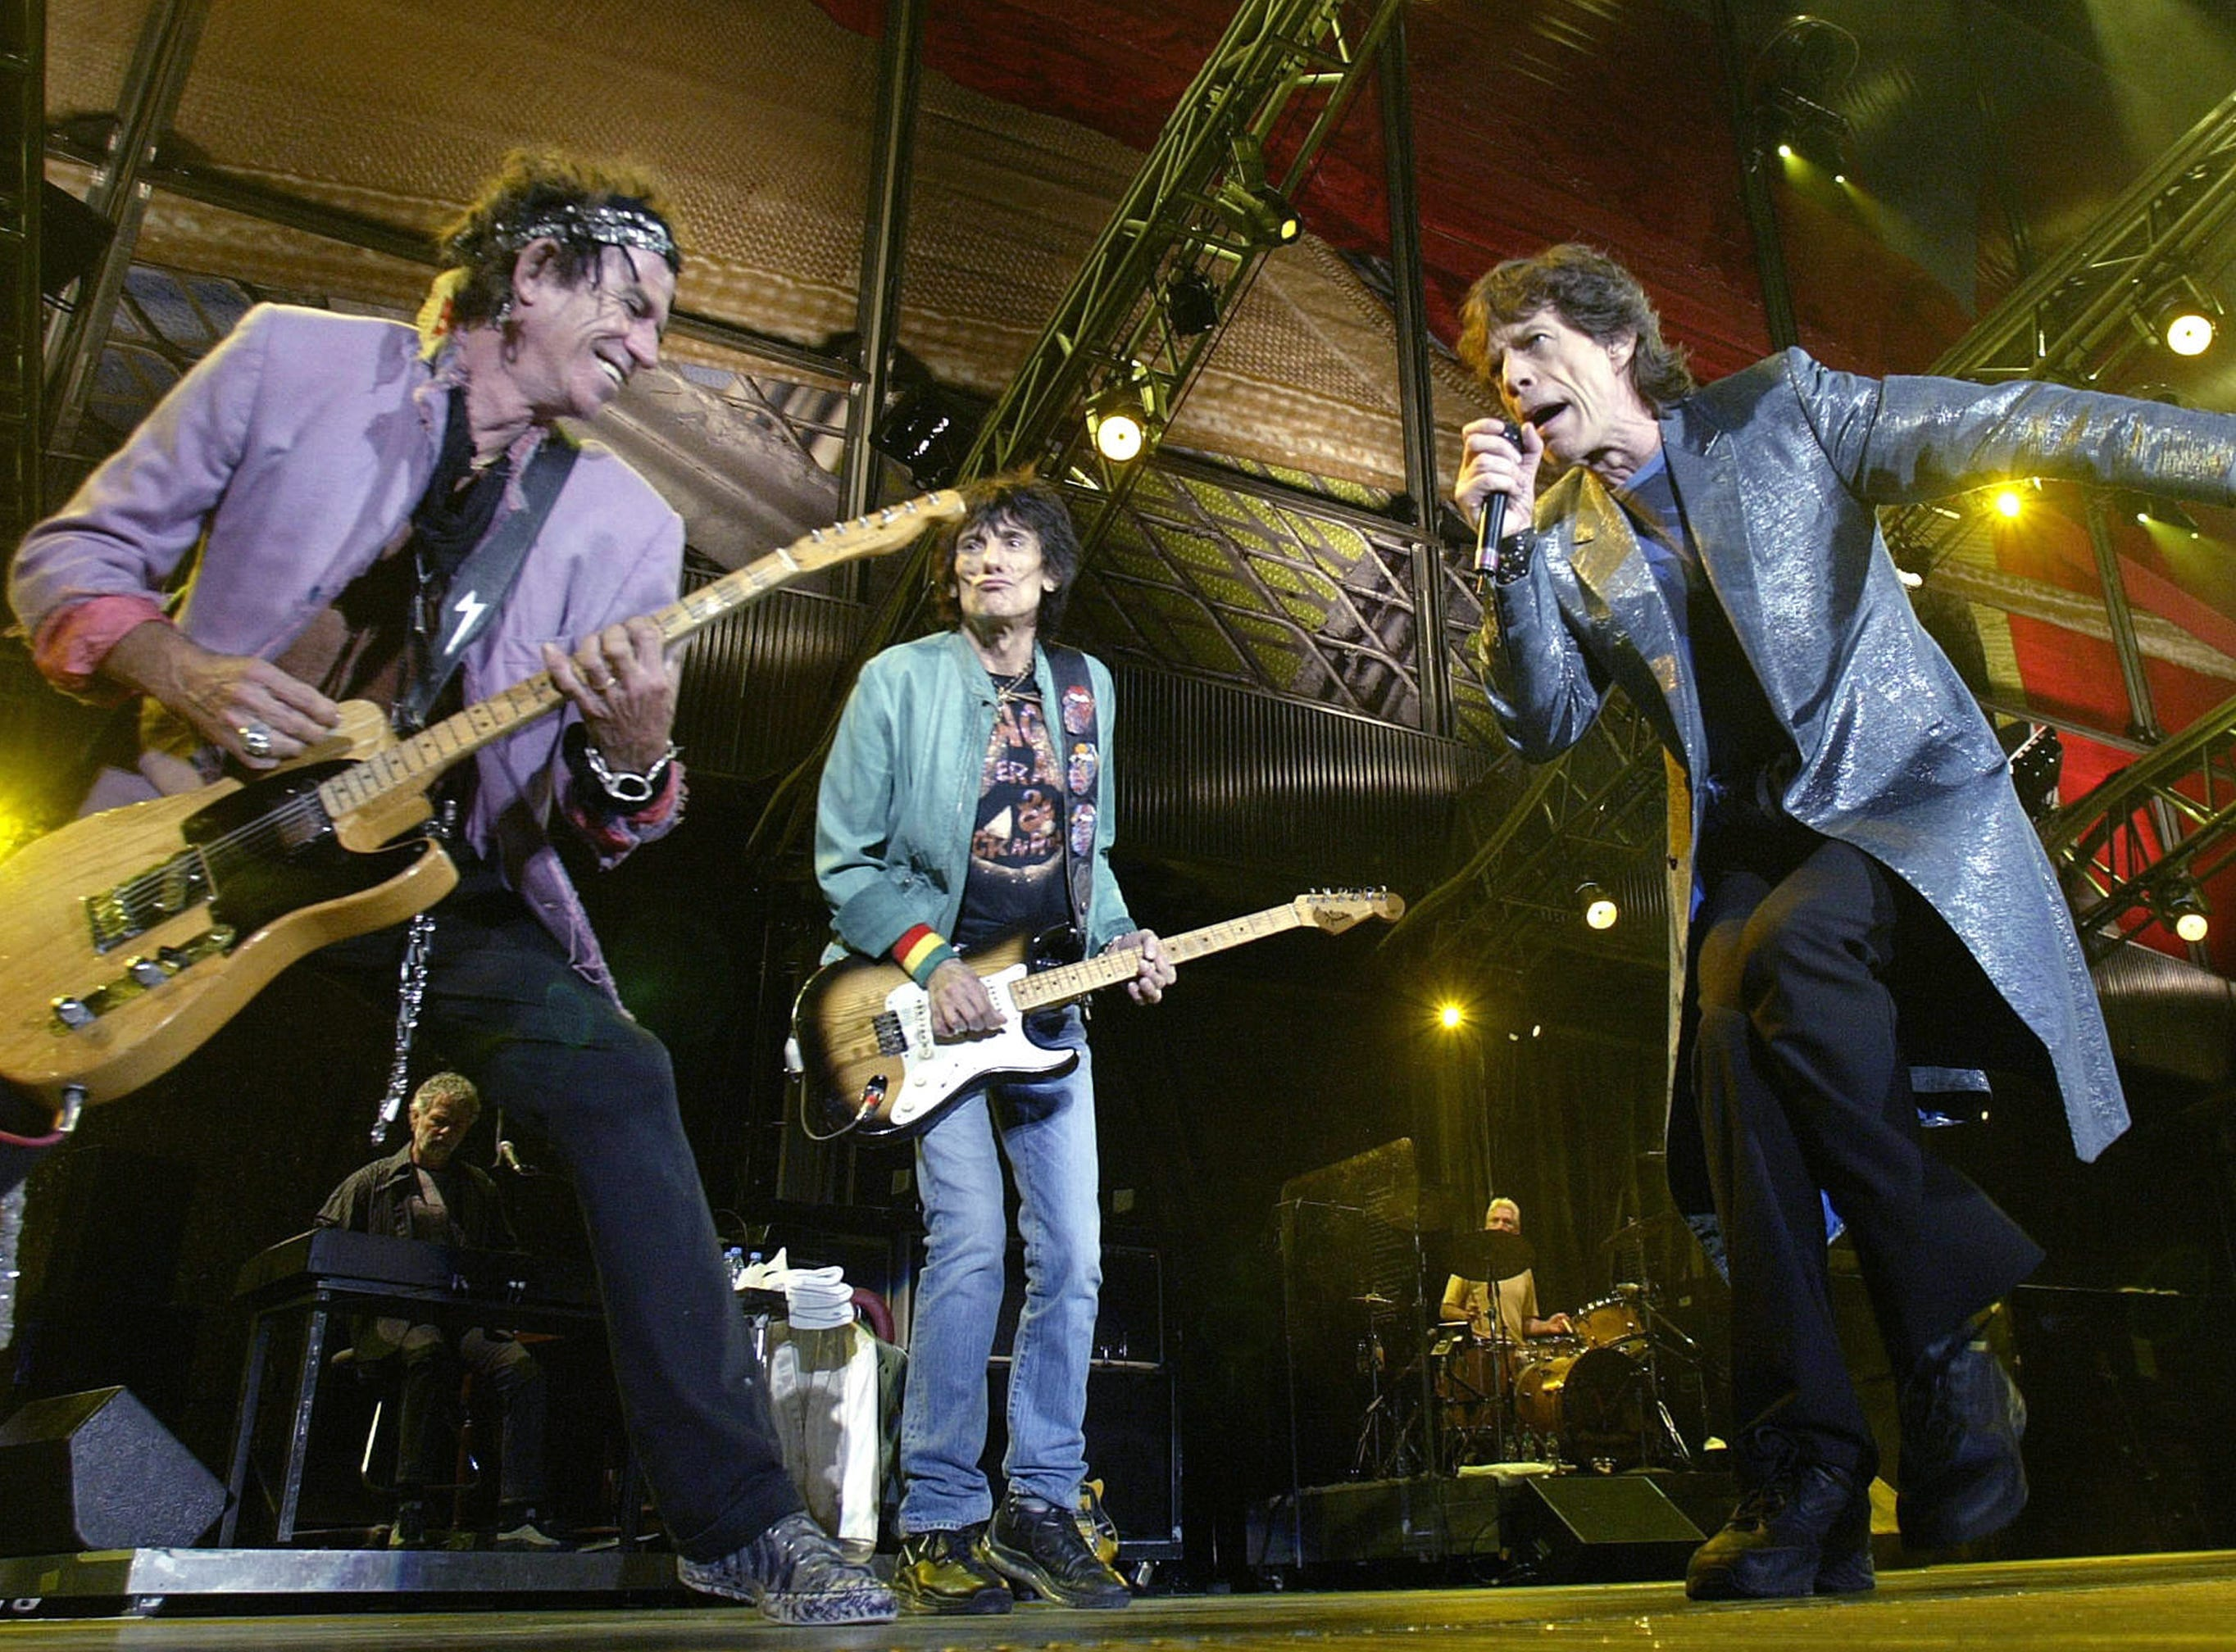 TO GO WITH AFP STORY BY JAMES PHEBY (FILES) A file picture taken in Benidorm, Spain, on September 25, 2003, shows Rolling Stones members lead singer Mick Jagger (R), Ron Wood (C) and Keith Richards (L). Most London shoppers rush by 165 Oxford Street without a second glance -- but it was here 50 years ago that The Rolling Stones played their first gig and changed the landscape of pop music forever. Mick Jagger, Keith Richards and Brian Jones played The Marquee Club on July 12, 1962 with three others, the first time they performed under the band name which would become synomymous worldwide with excess and muscial flair.   AFP PHOTO / JOSE JORDAN/FILESJOSE JORDAN/AFP/GettyImages ORIG FILE ID: 512206308